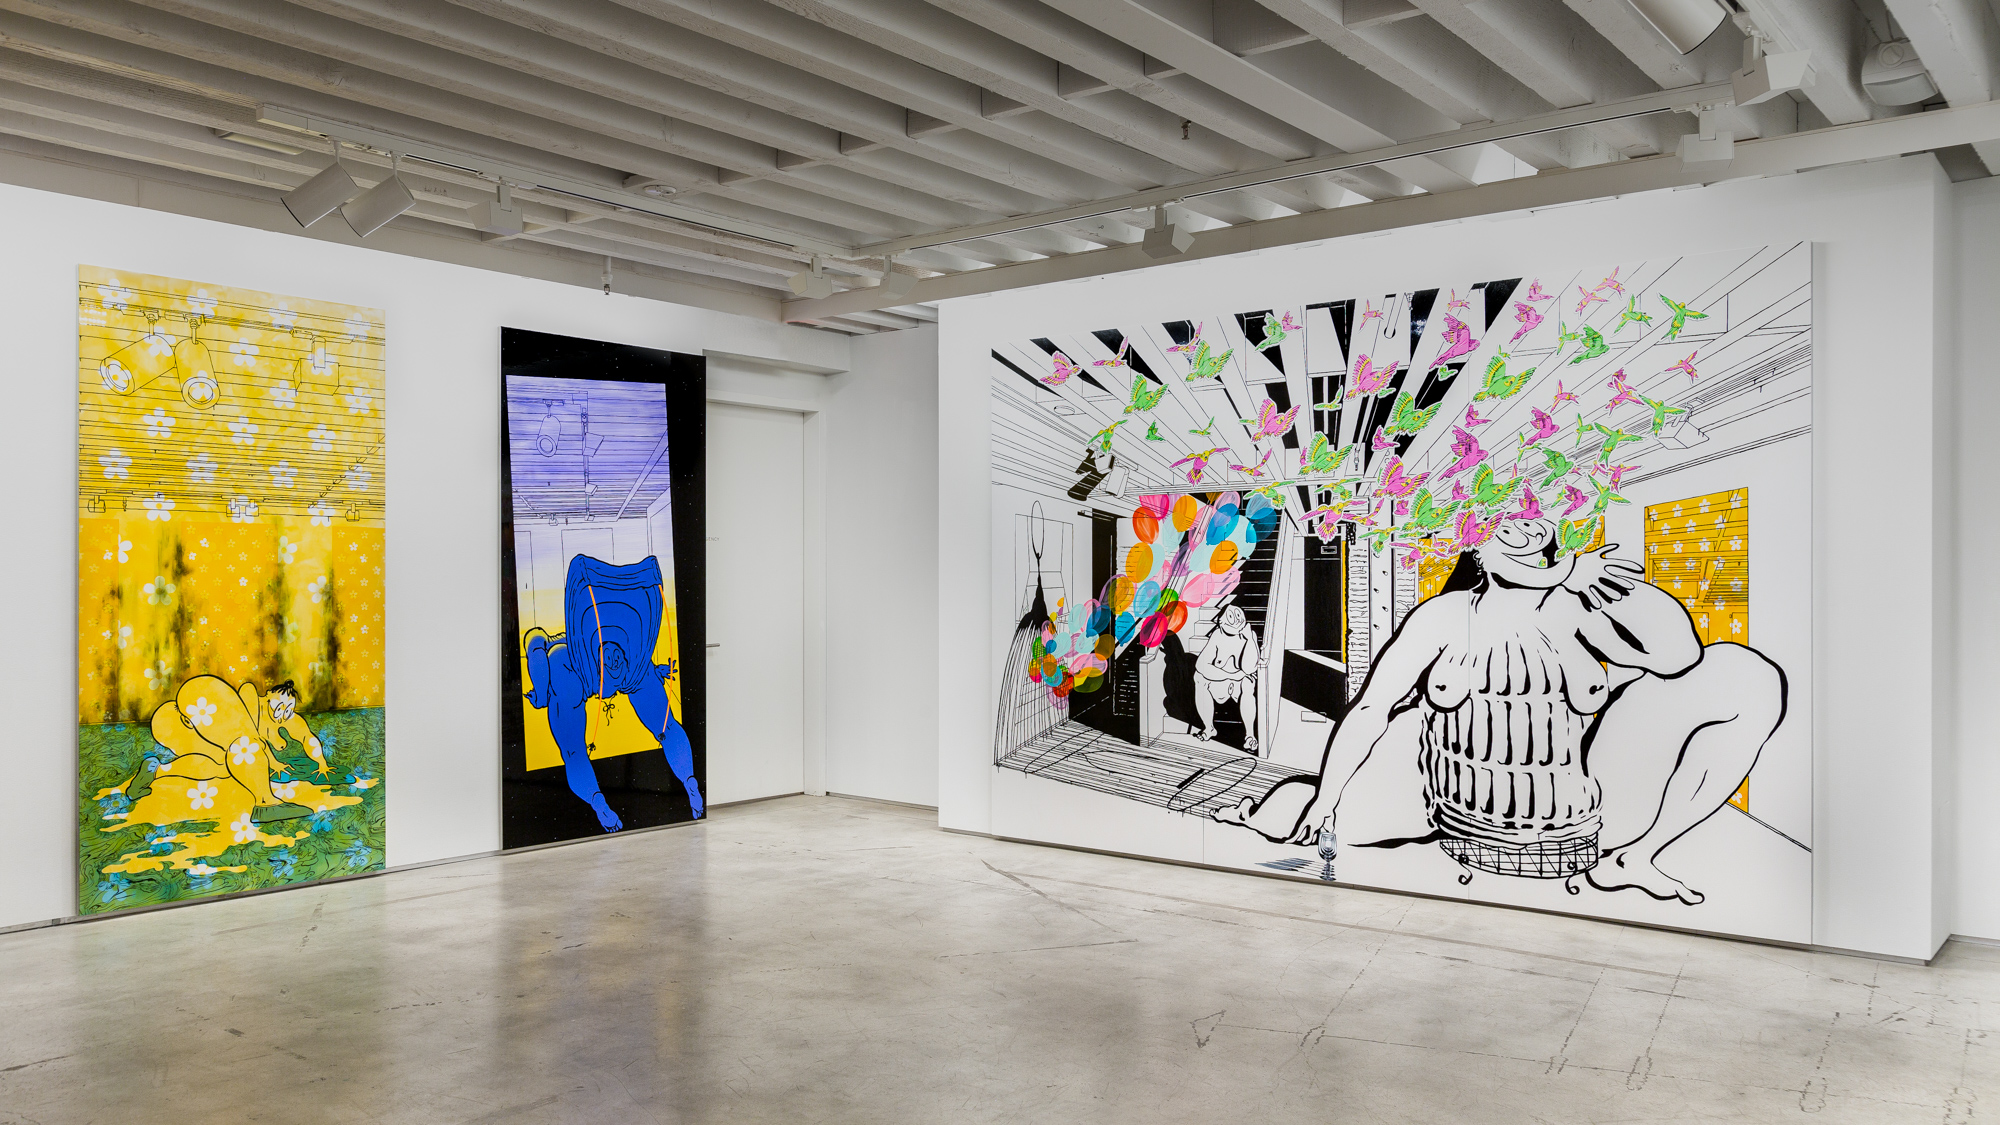 Installation view, Ebecho Muslimova: Scenes in the Sublevel, The Drawing Center, New York, NY, 2021. Photo by Daniel Terna.